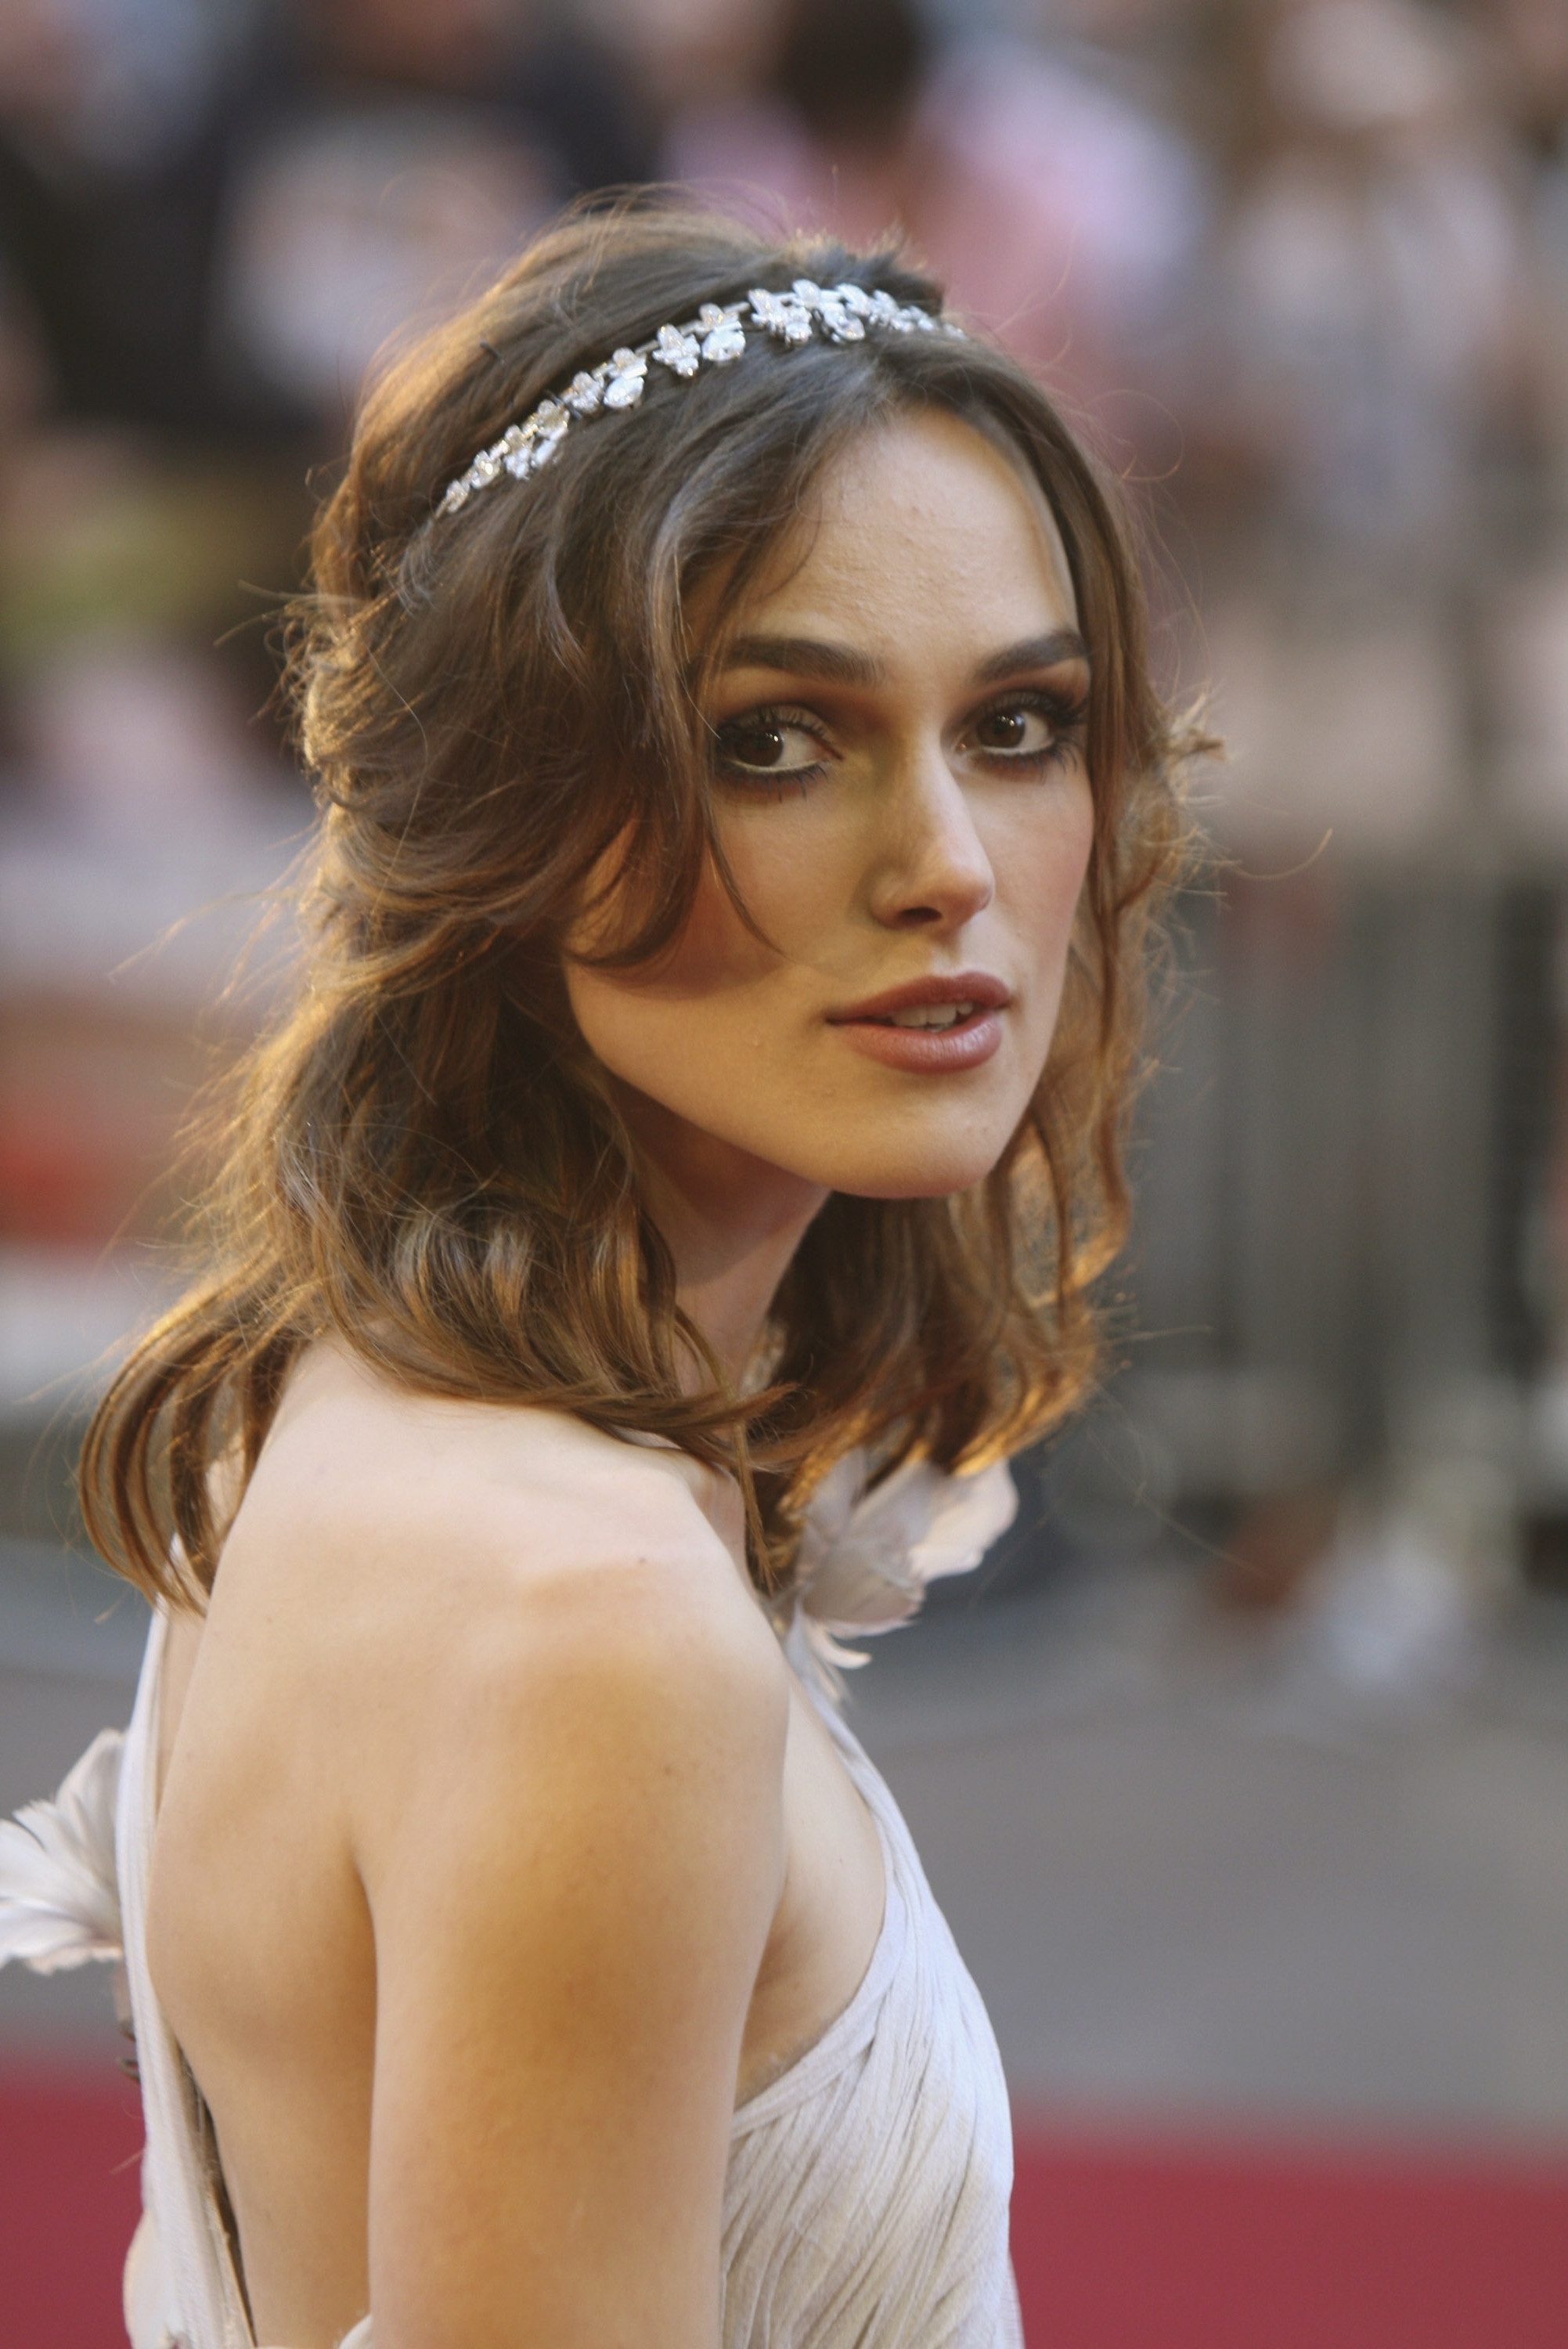 Prom Hairstyles With Headbands  Hairstyles With Headbands For Prom Hairstyles By Unixcode